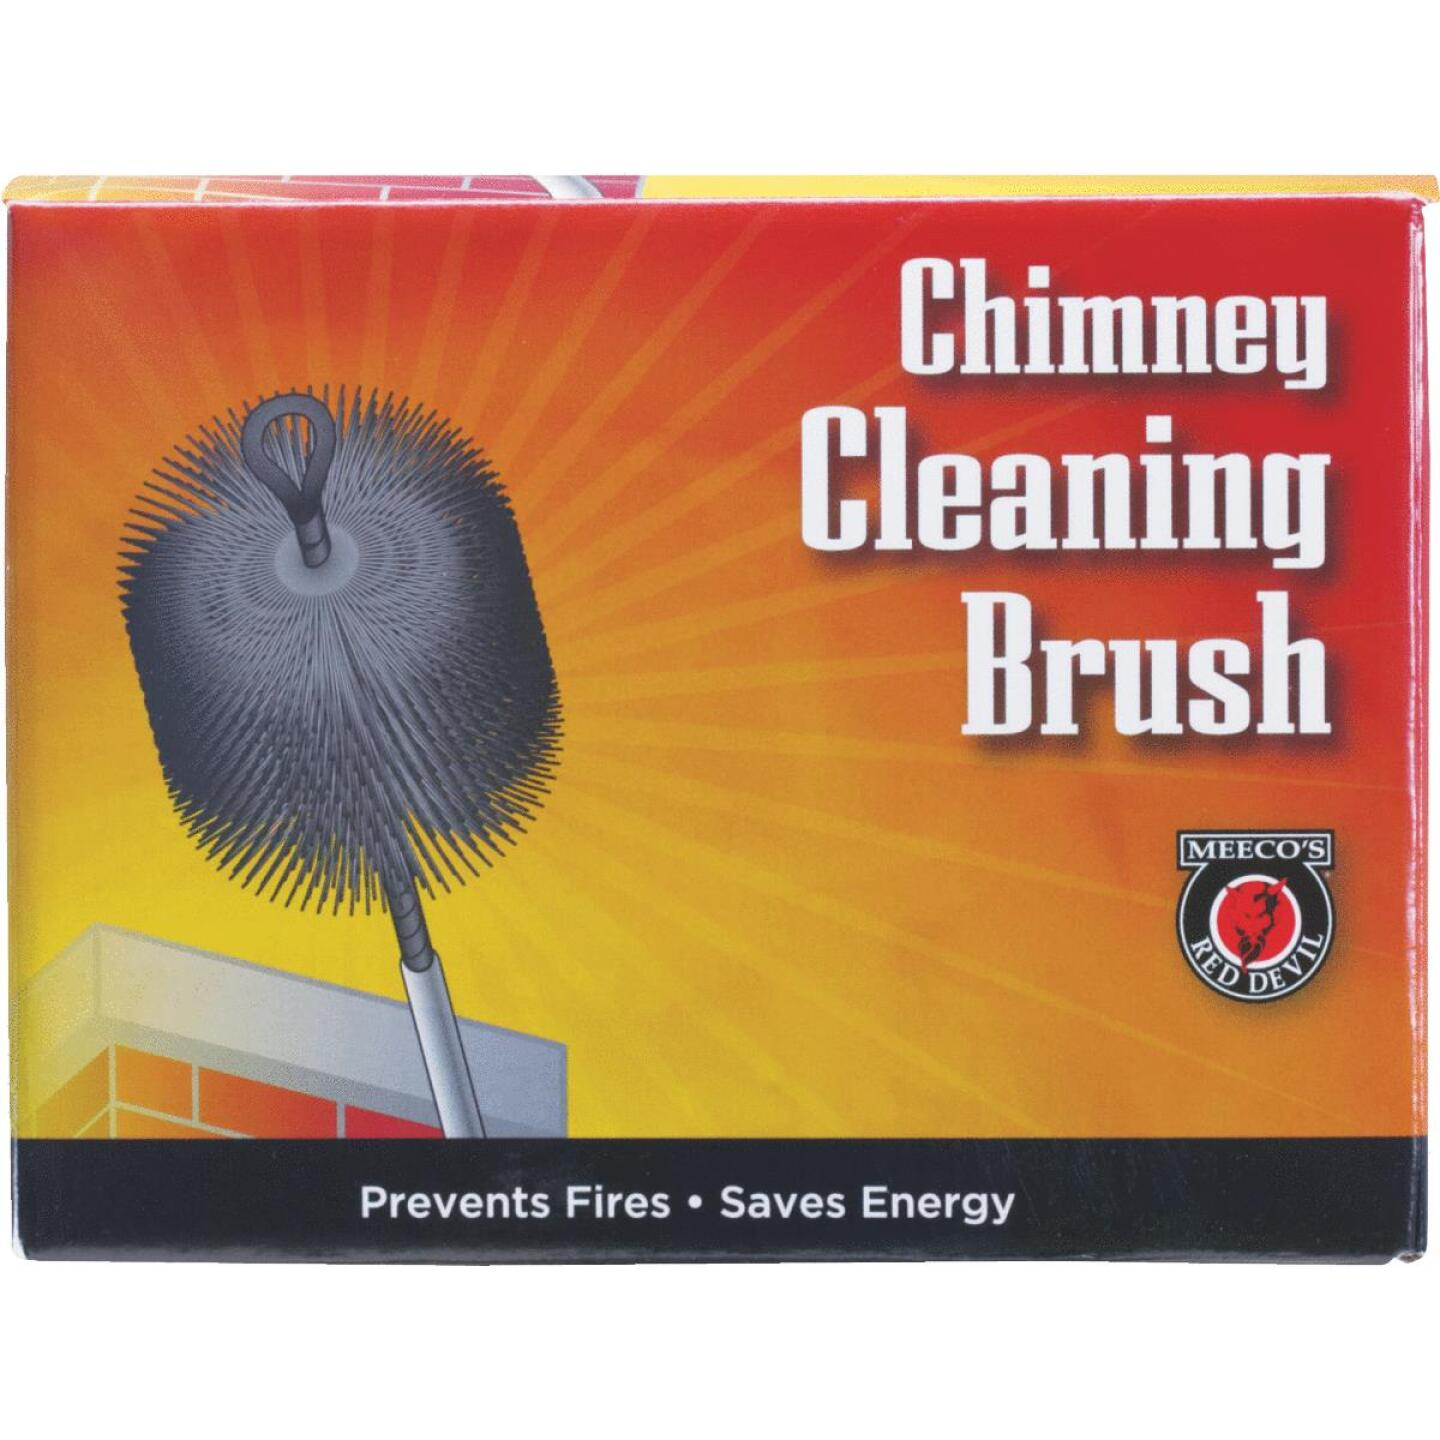 Meeco's Red Devil 7 In. Square Wire Chimney Brush Image 2